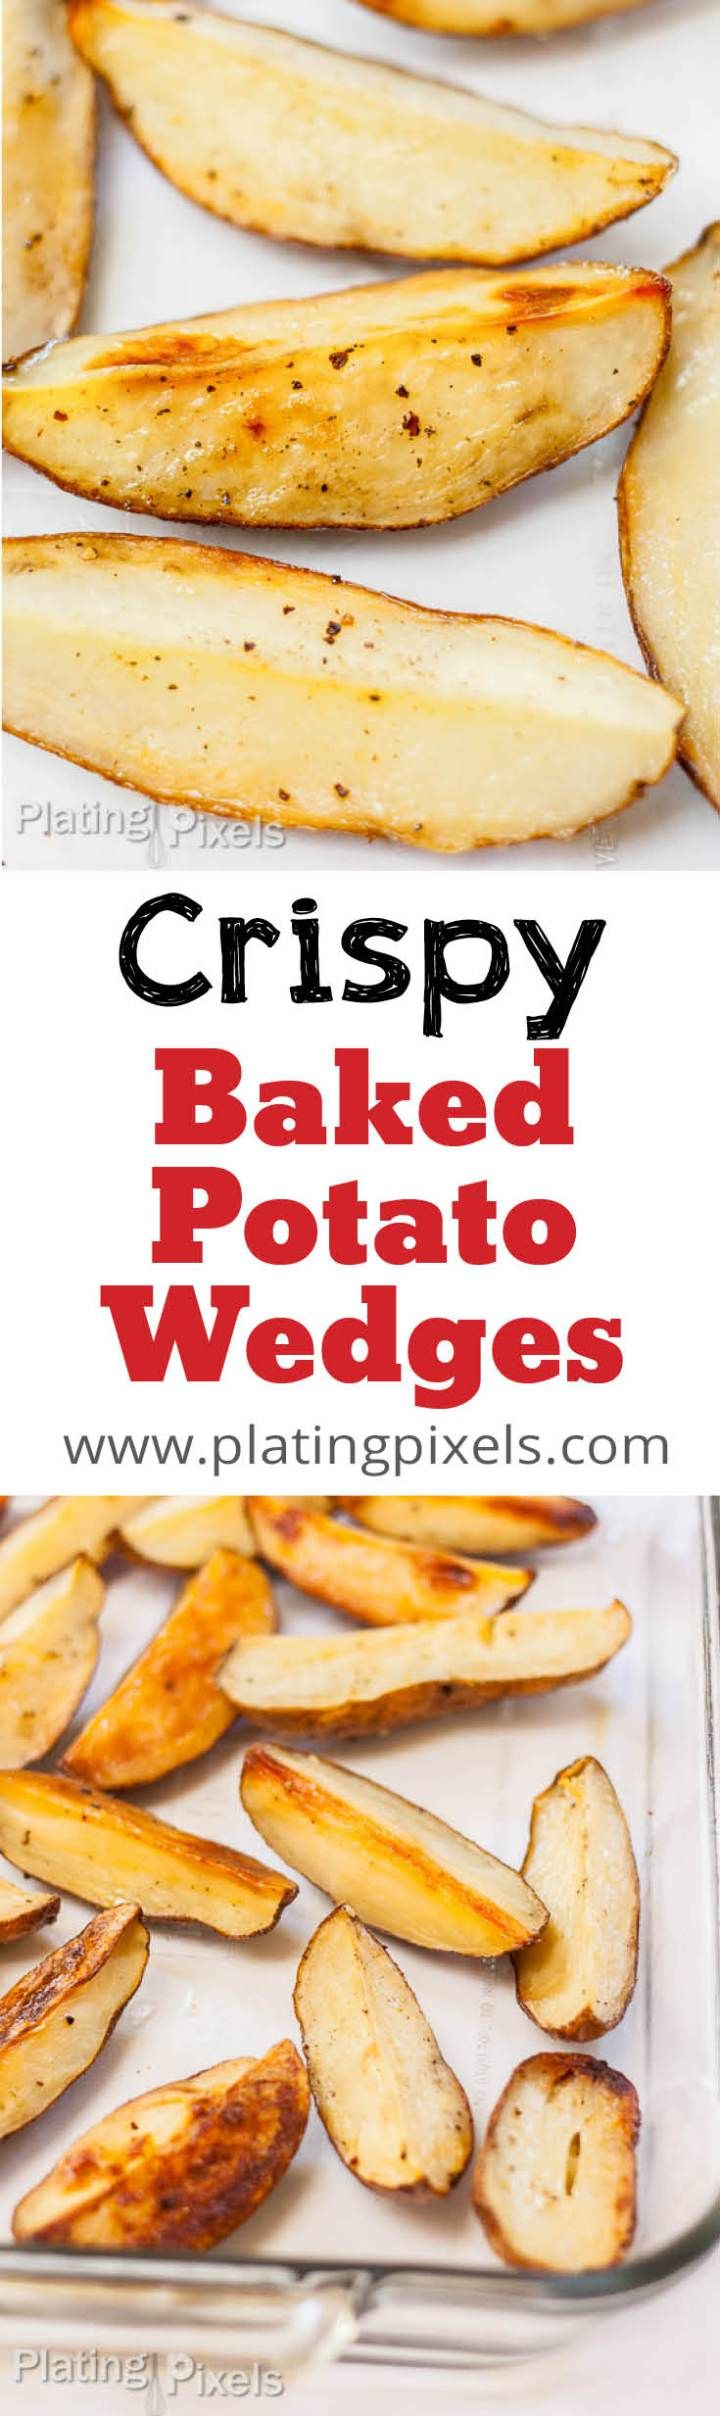 25+ Best How To Bake Potatoes Ideas On Pinterest  Baked Potato Oven,  Perfect Baked Potato And Baked Potato Time